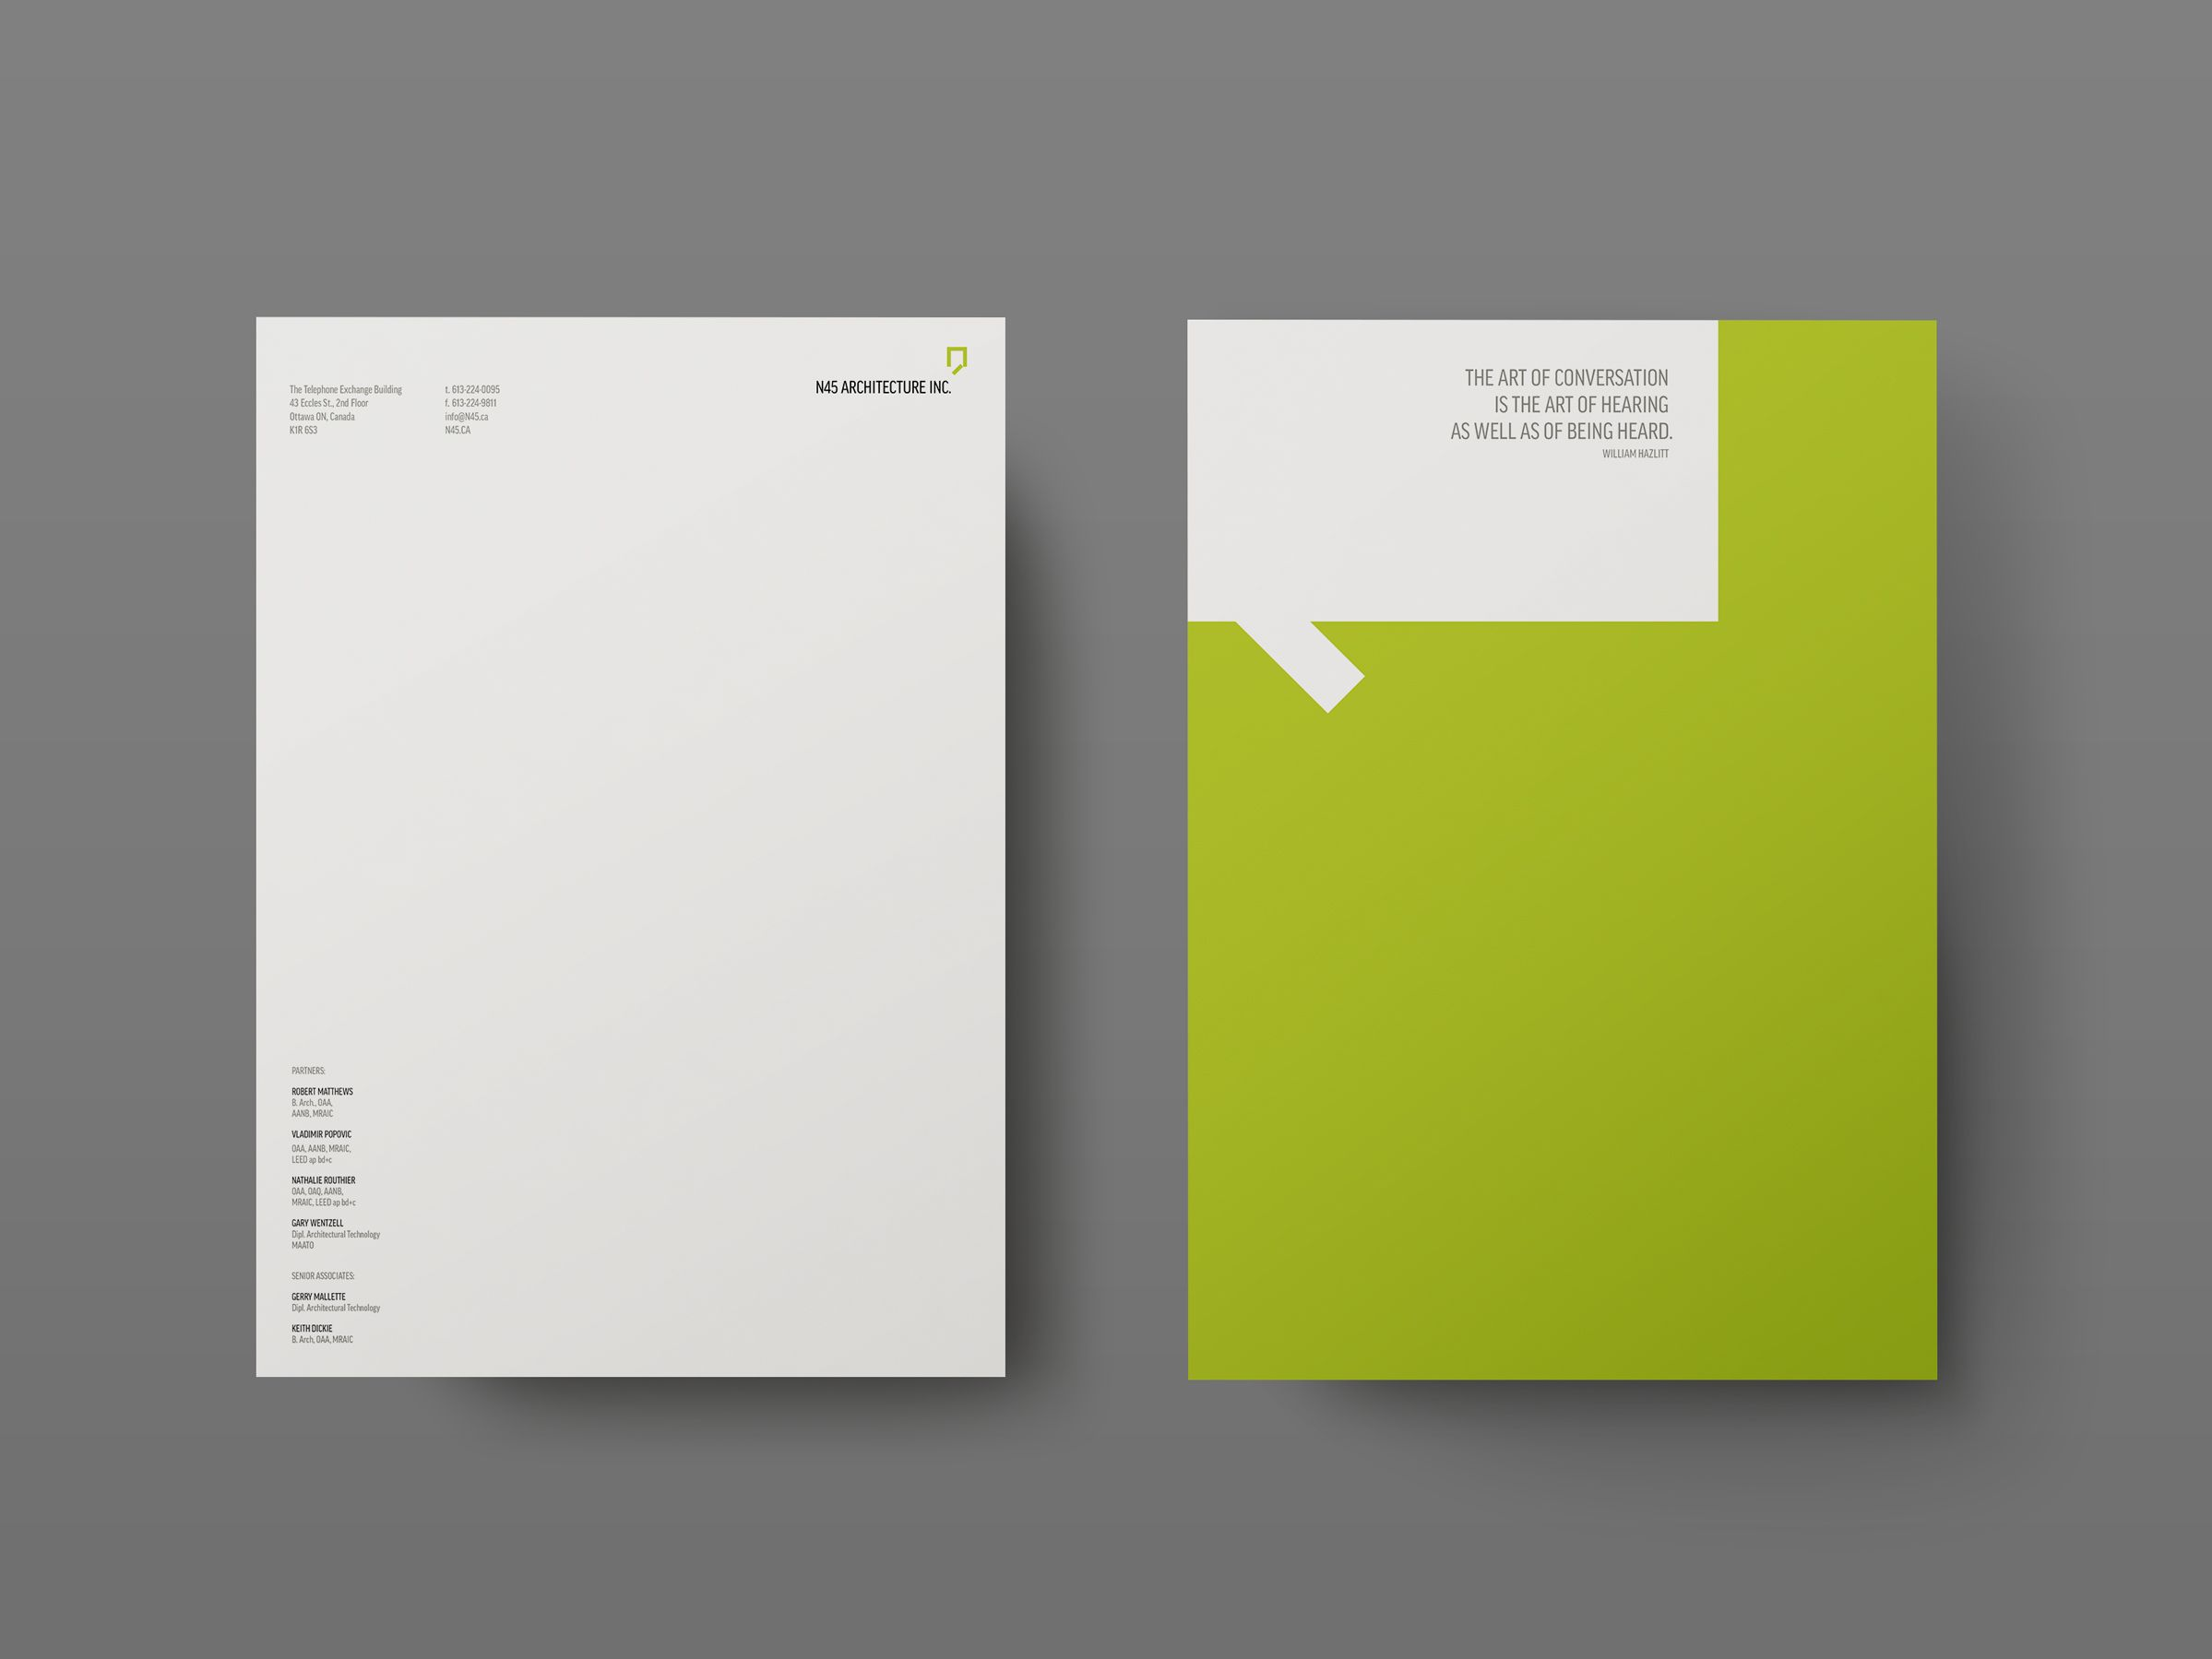 Letterhead for N45 Architecture Inc., architects by Graphic Designer idApostle